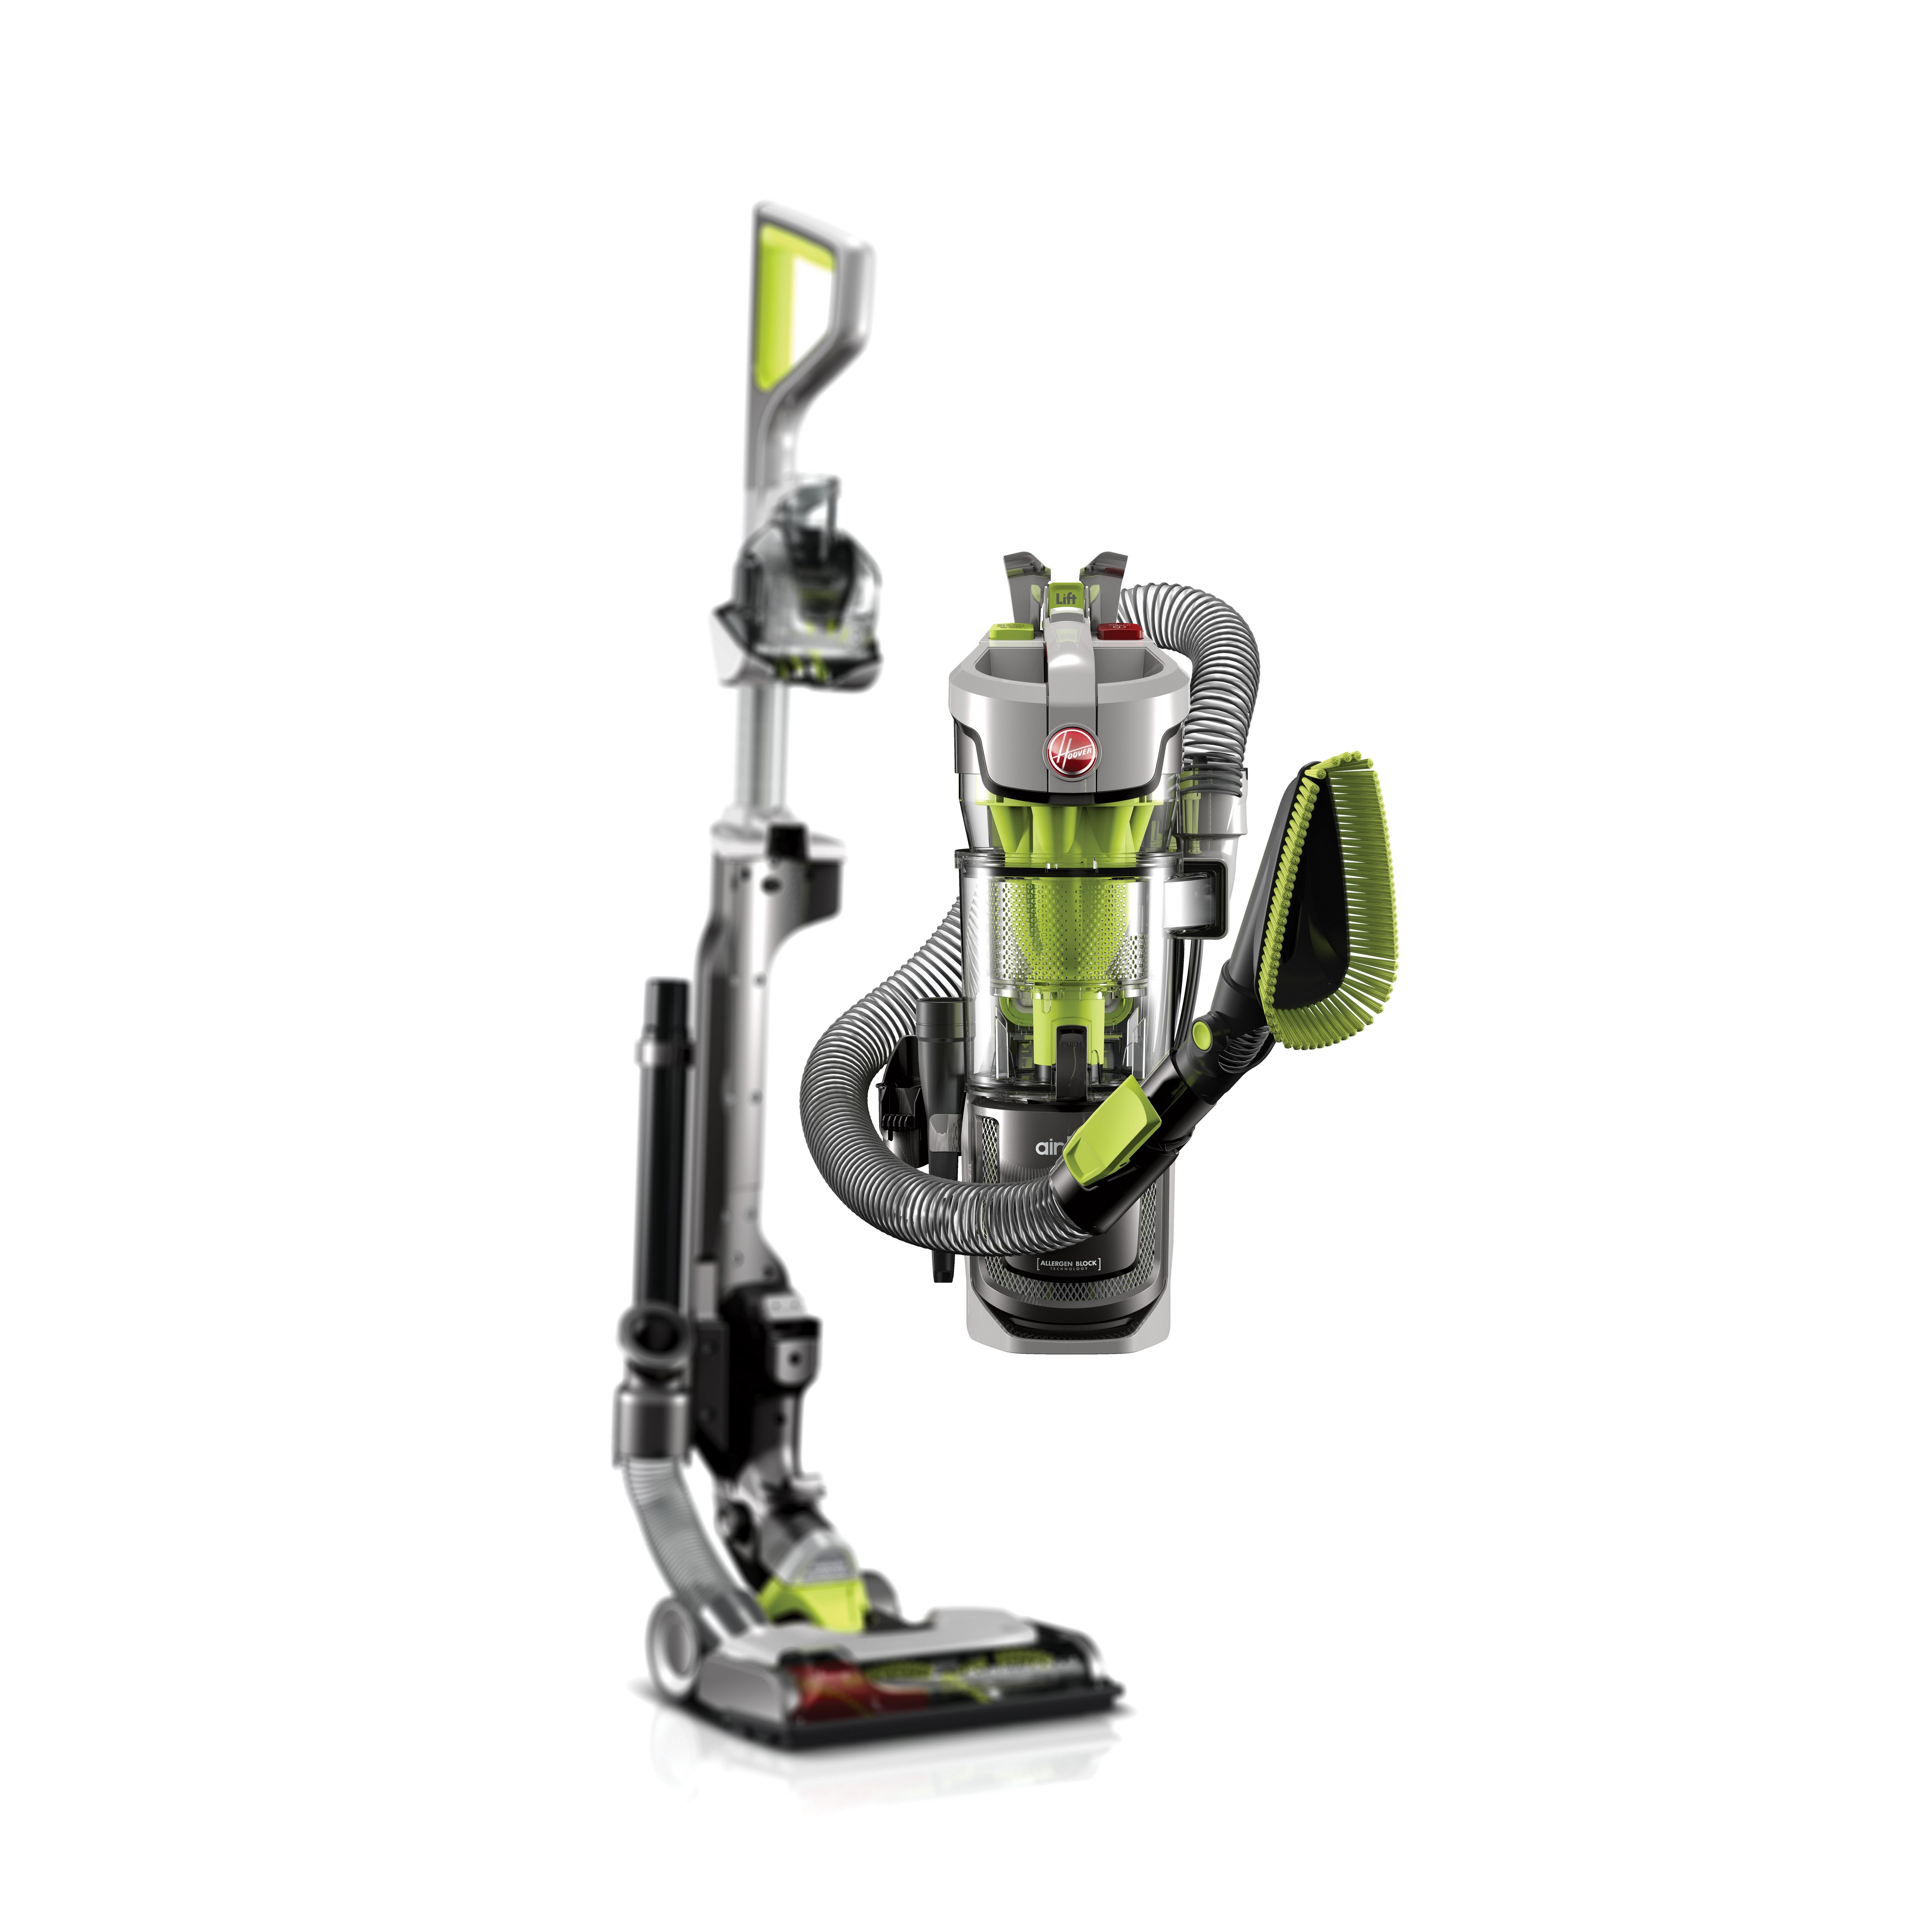 Hoover Air Lift Deluxe Bagless Upright Vacuum Cleaner